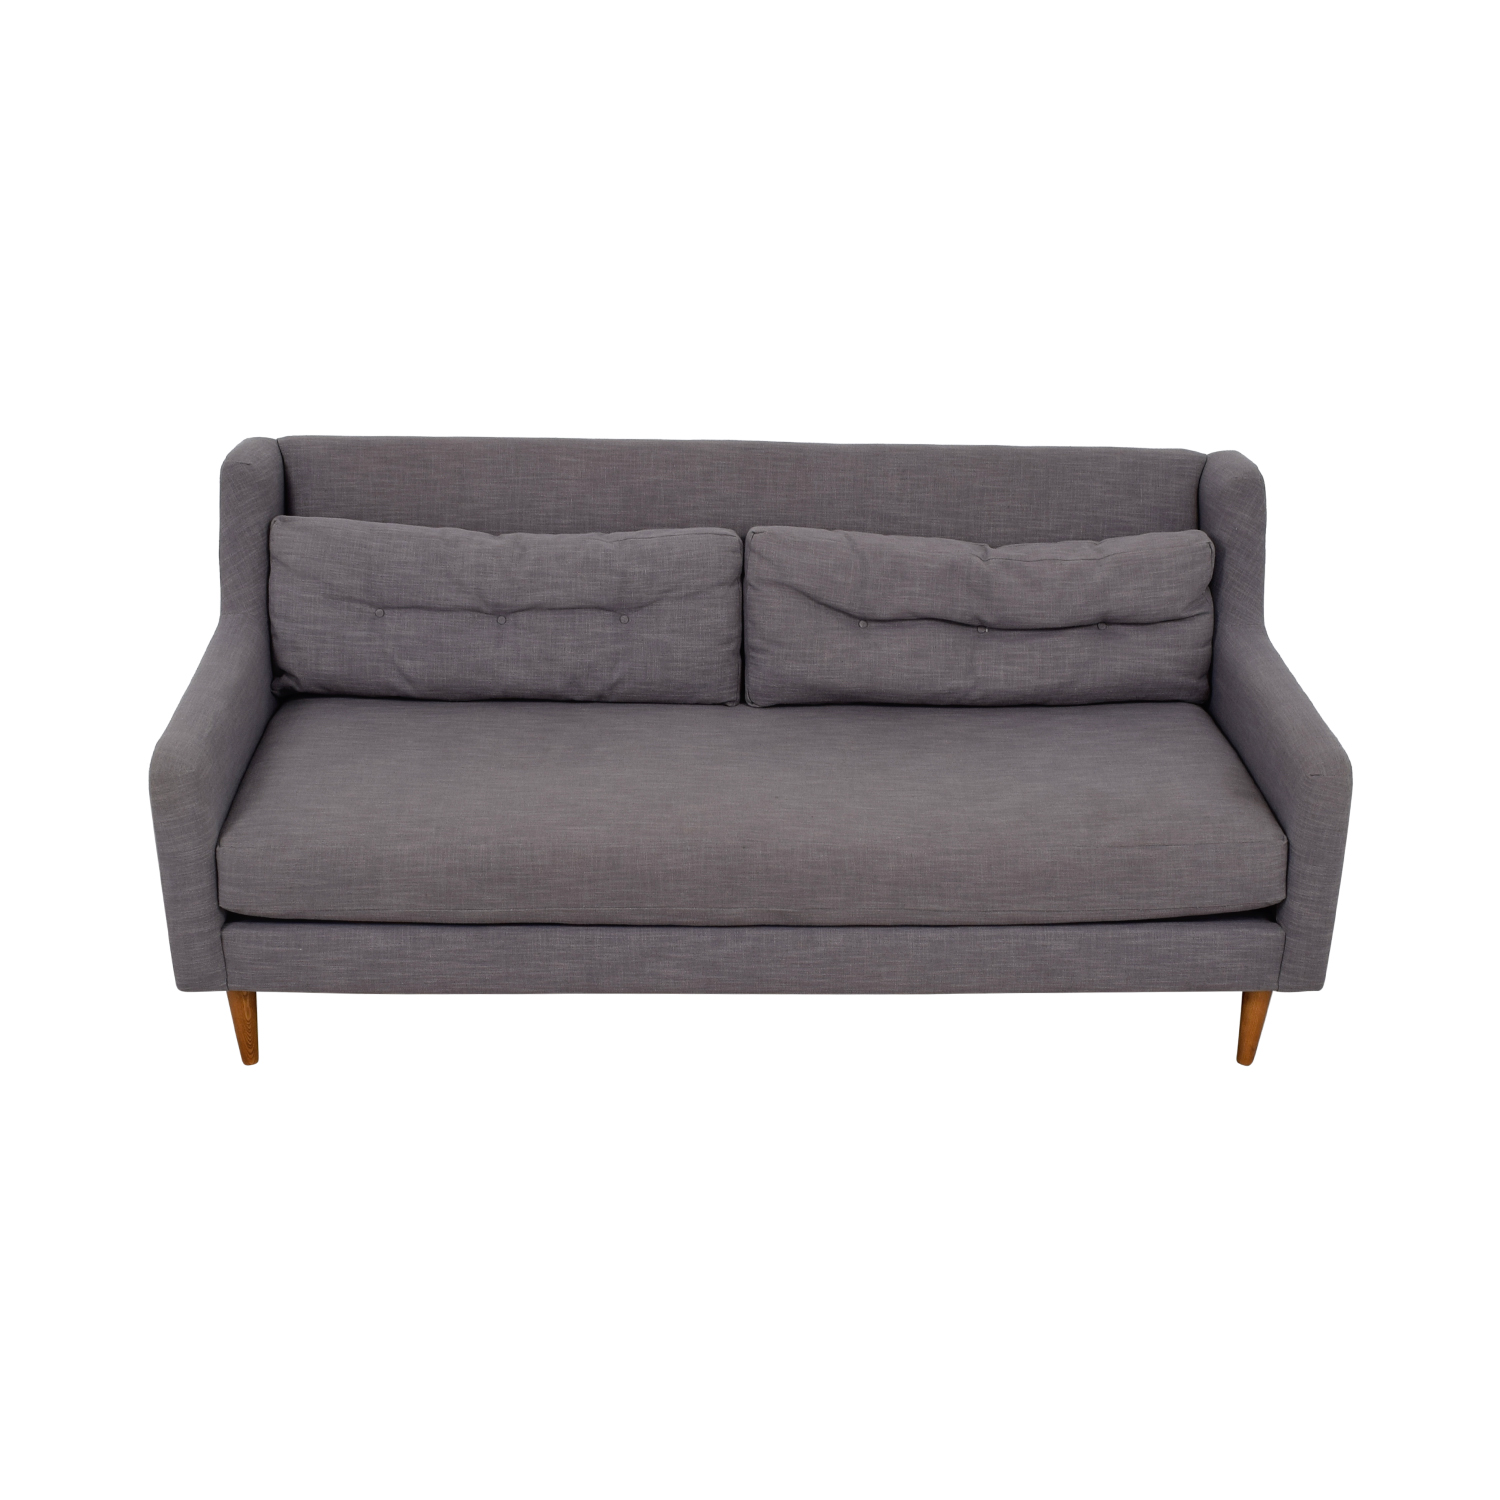 West Elm Crosby Grey Mid-Century Couch West Elm